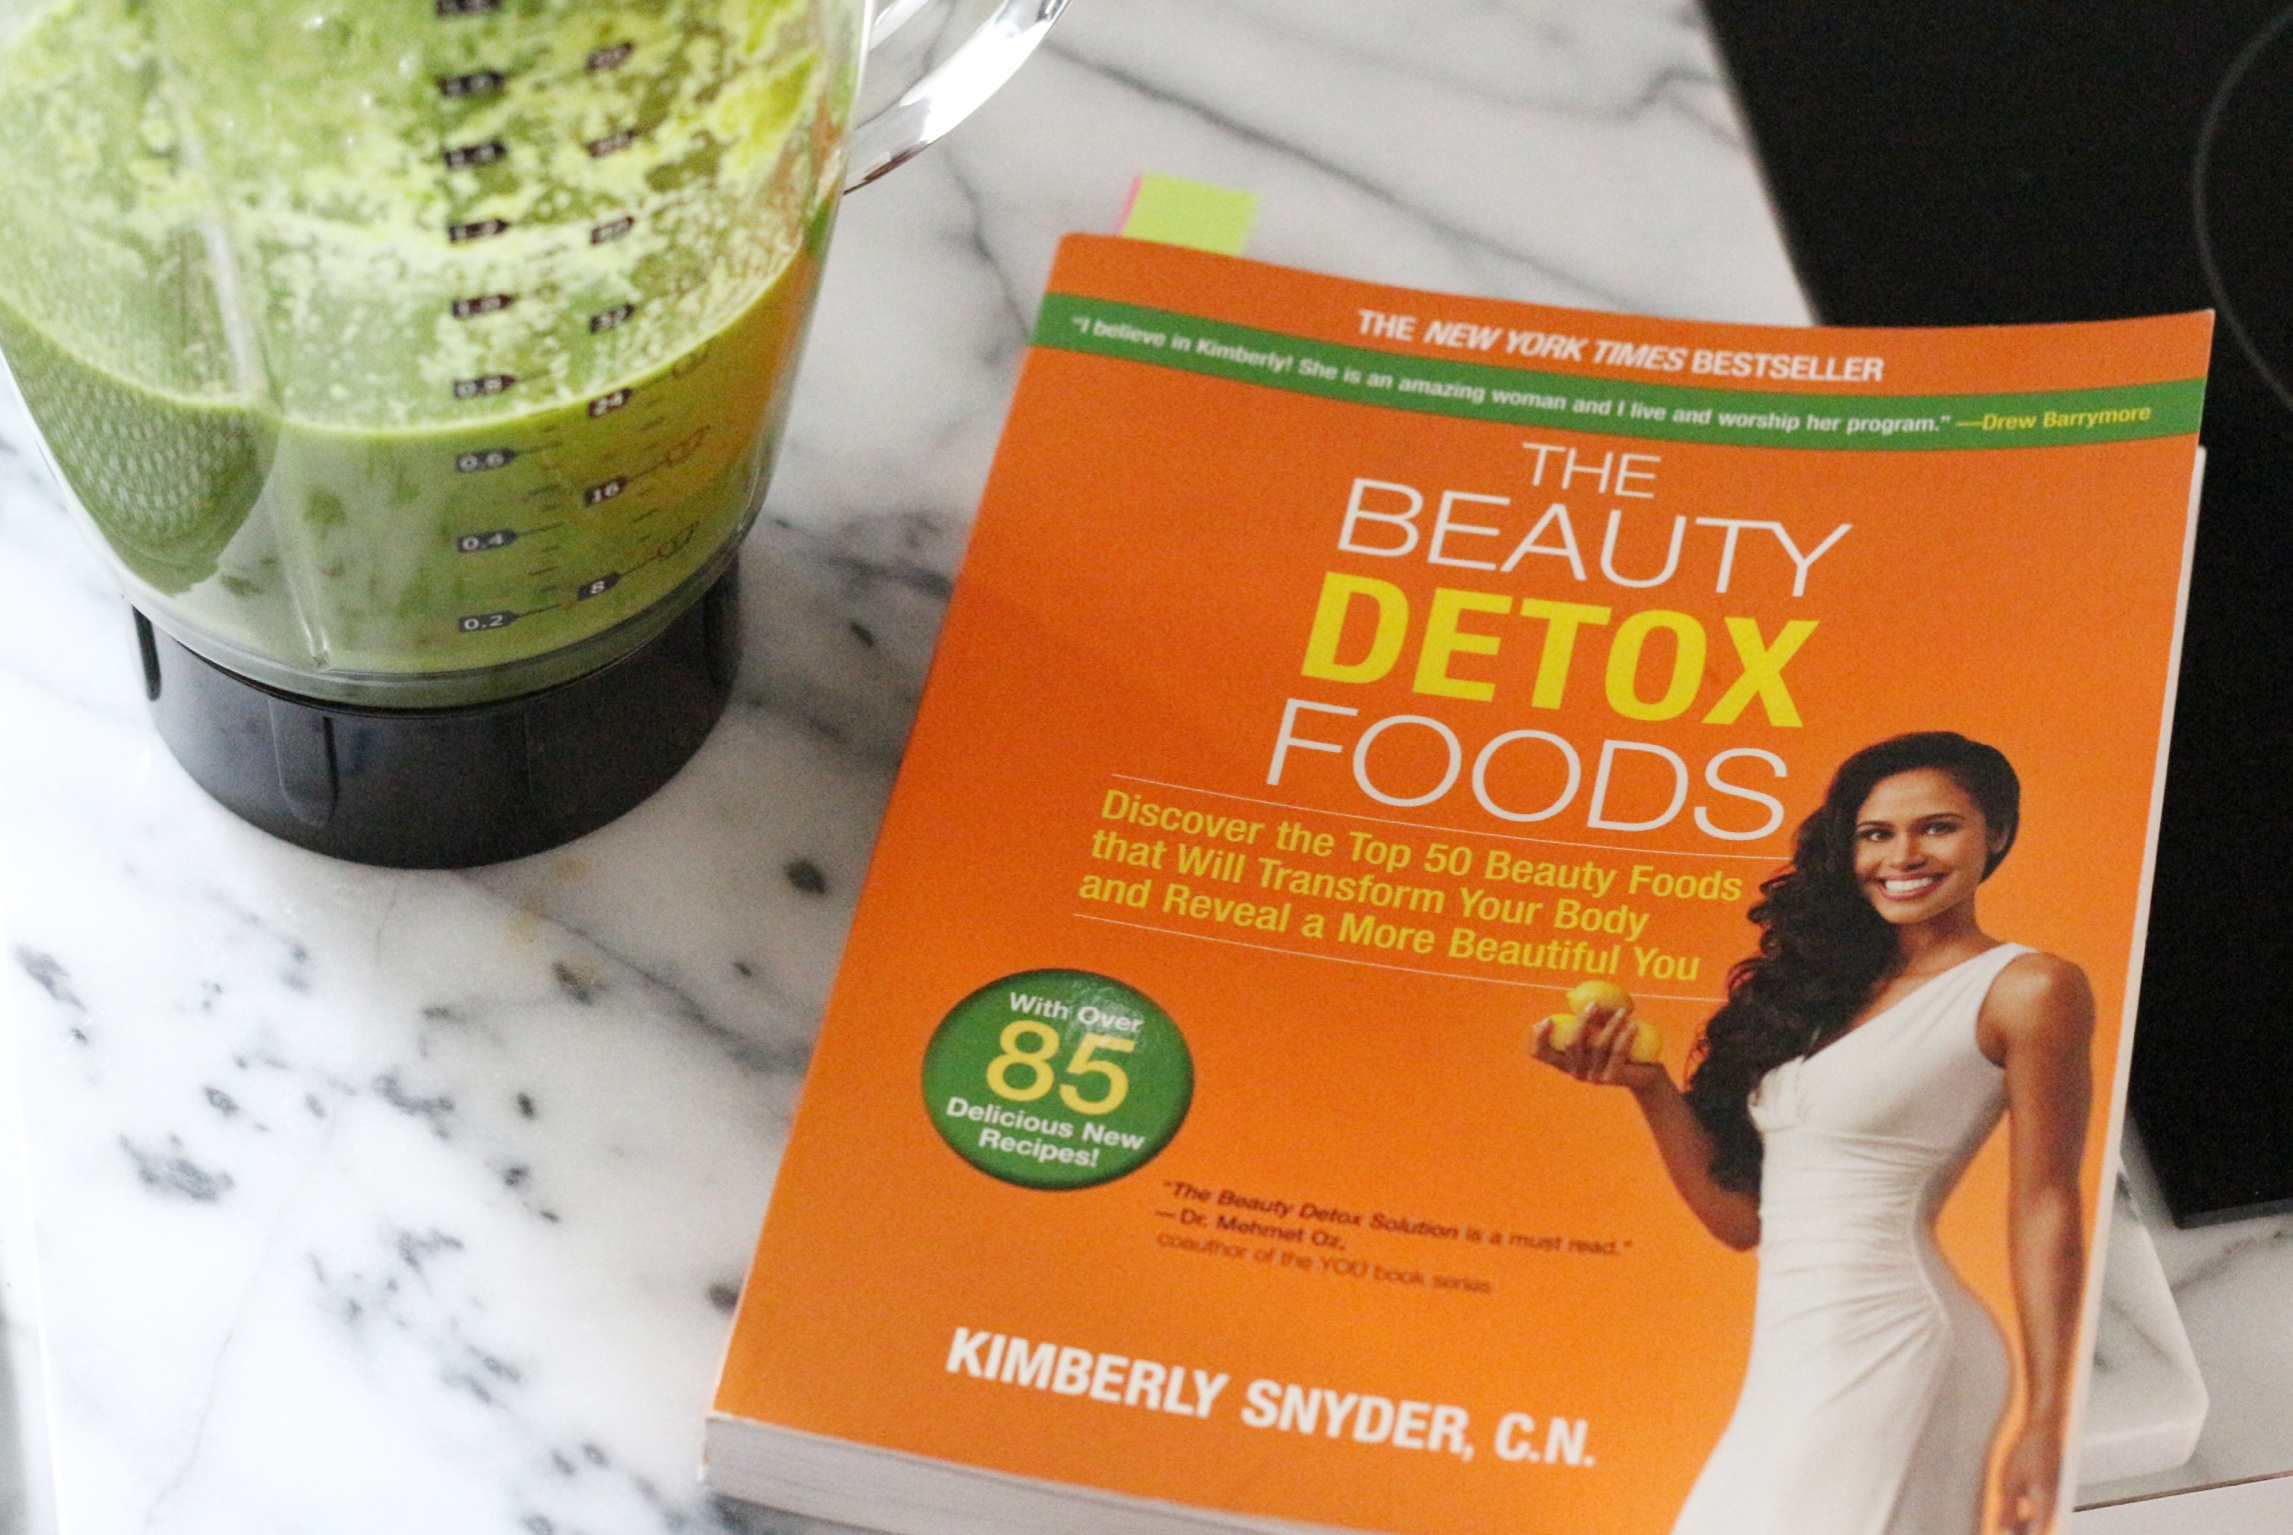 the beauty detox solution and foods essay The beauty detox solution foods the beauty detox foods by kimberly snyder: what to eat , the beauty detox foods (2013) is a detox diet eat mostly plant based foods.